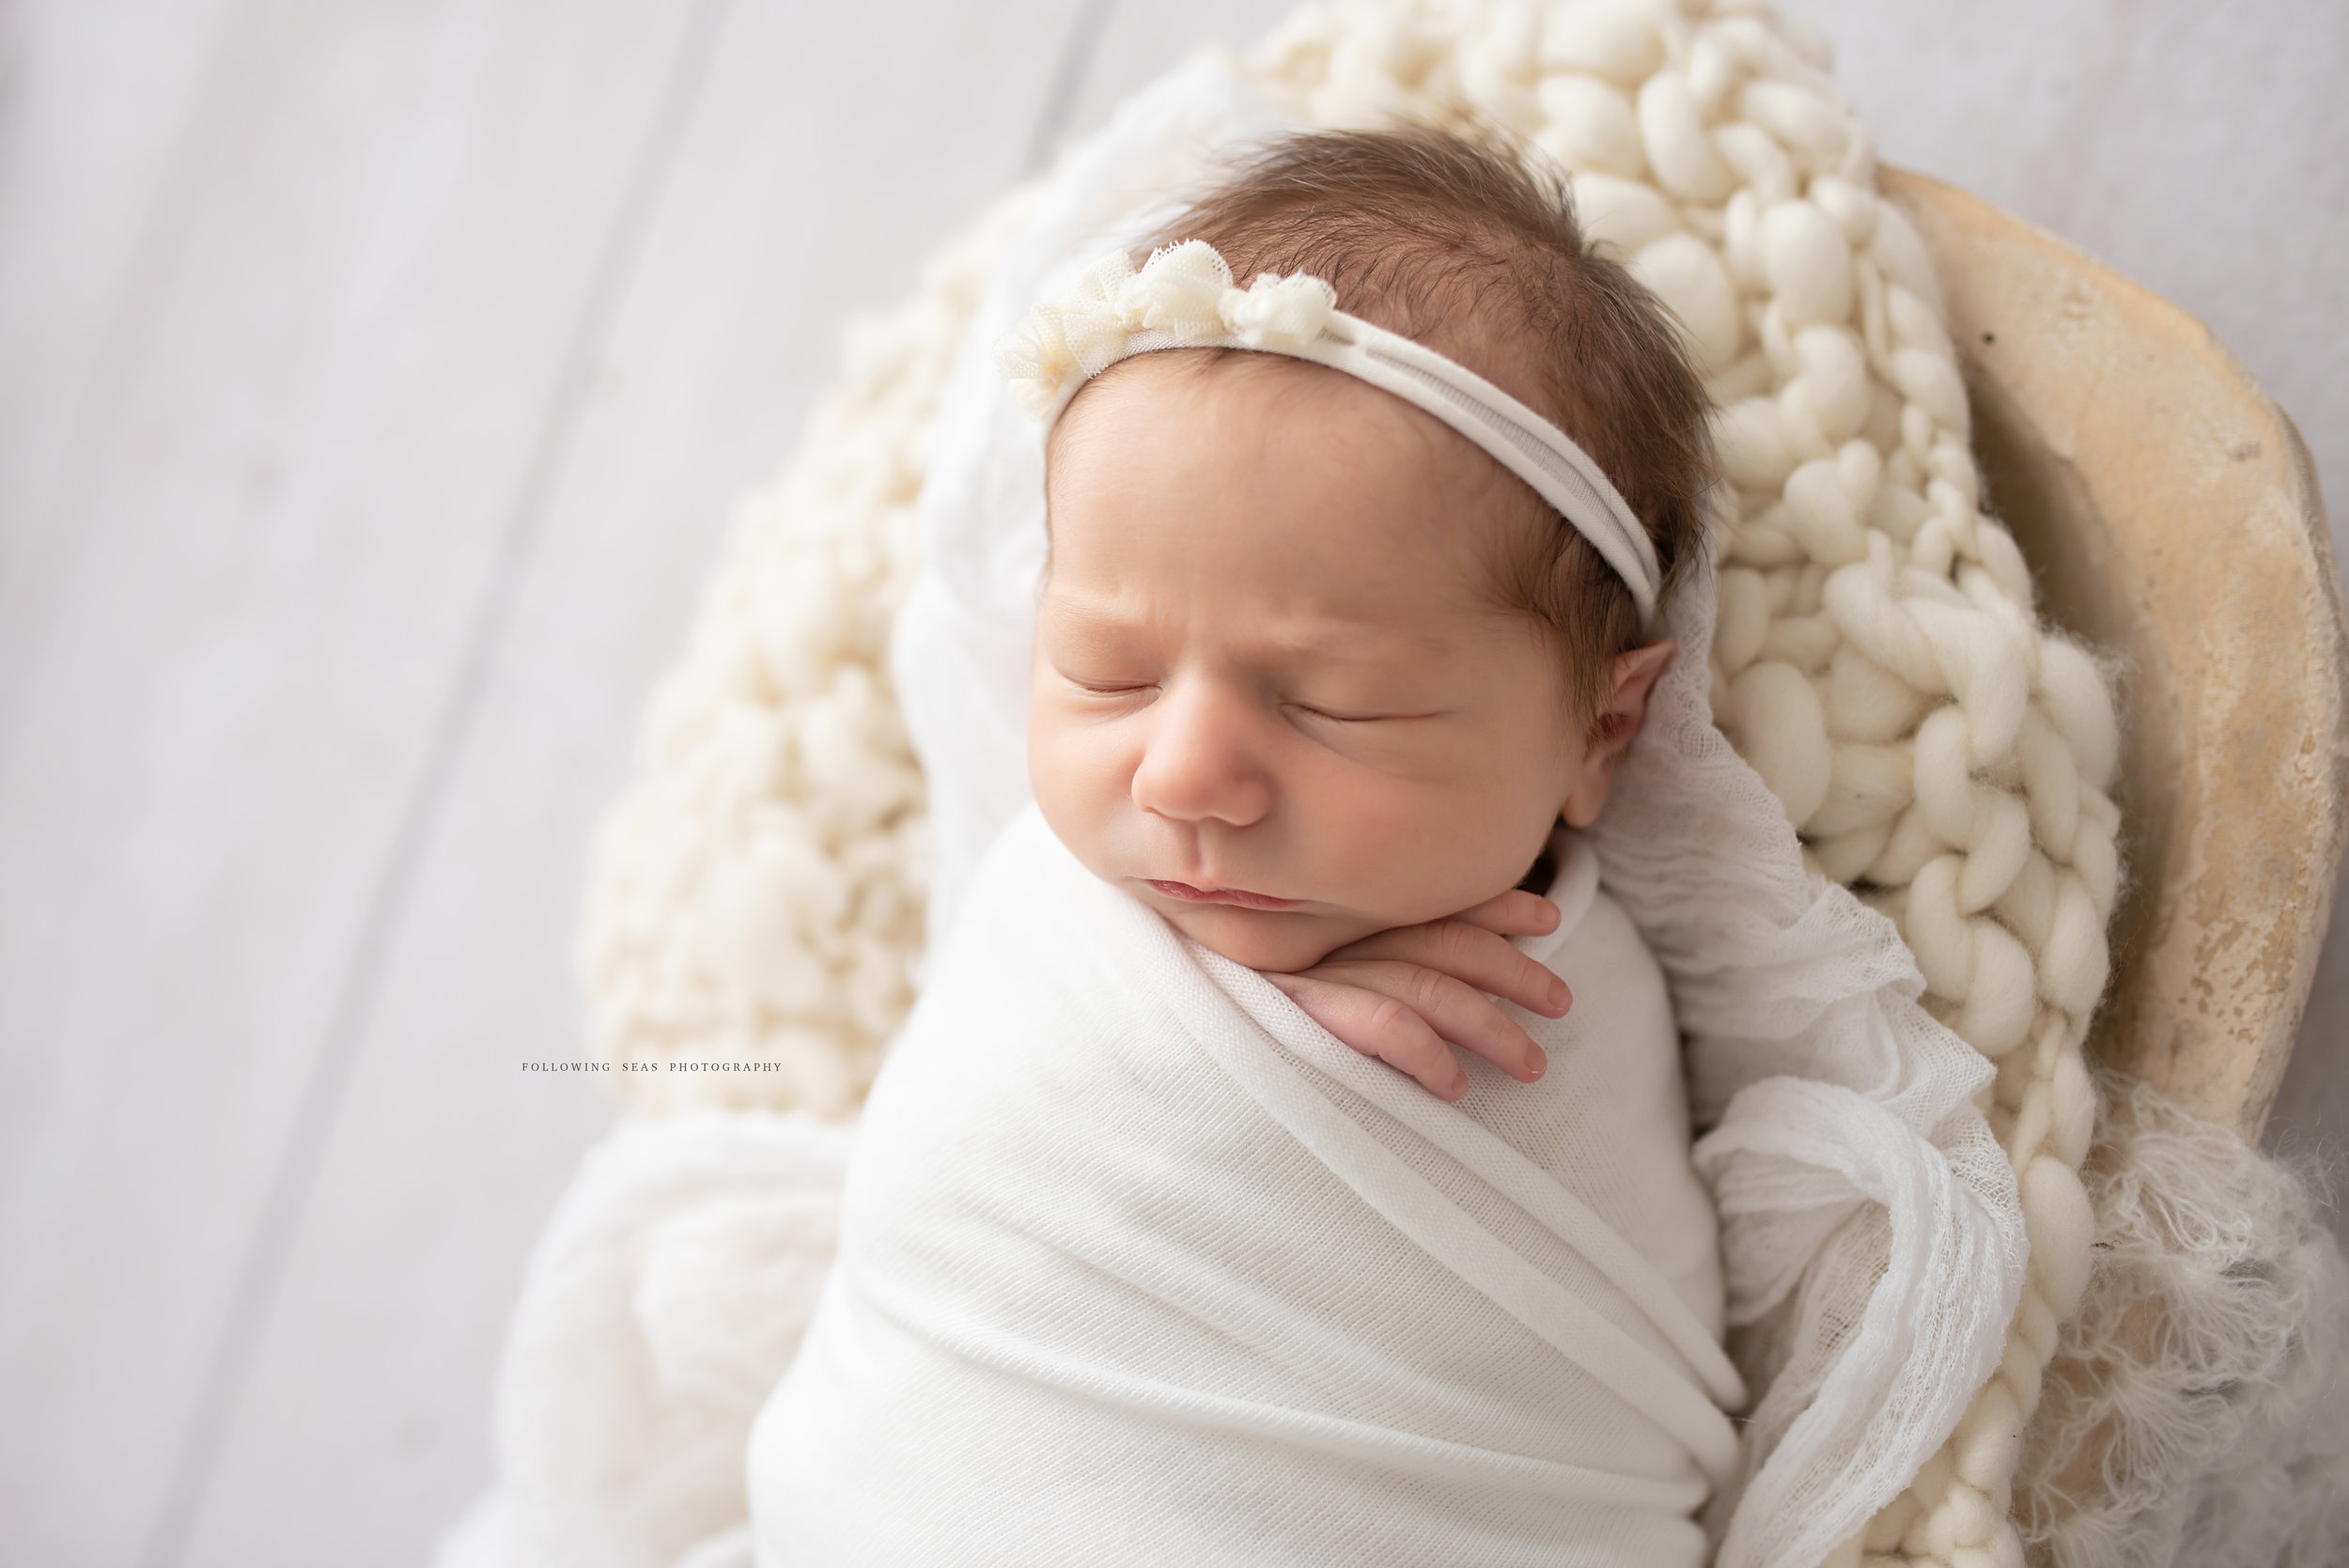 Charleston-Newborn-Photographer-FSP_8755.jpg